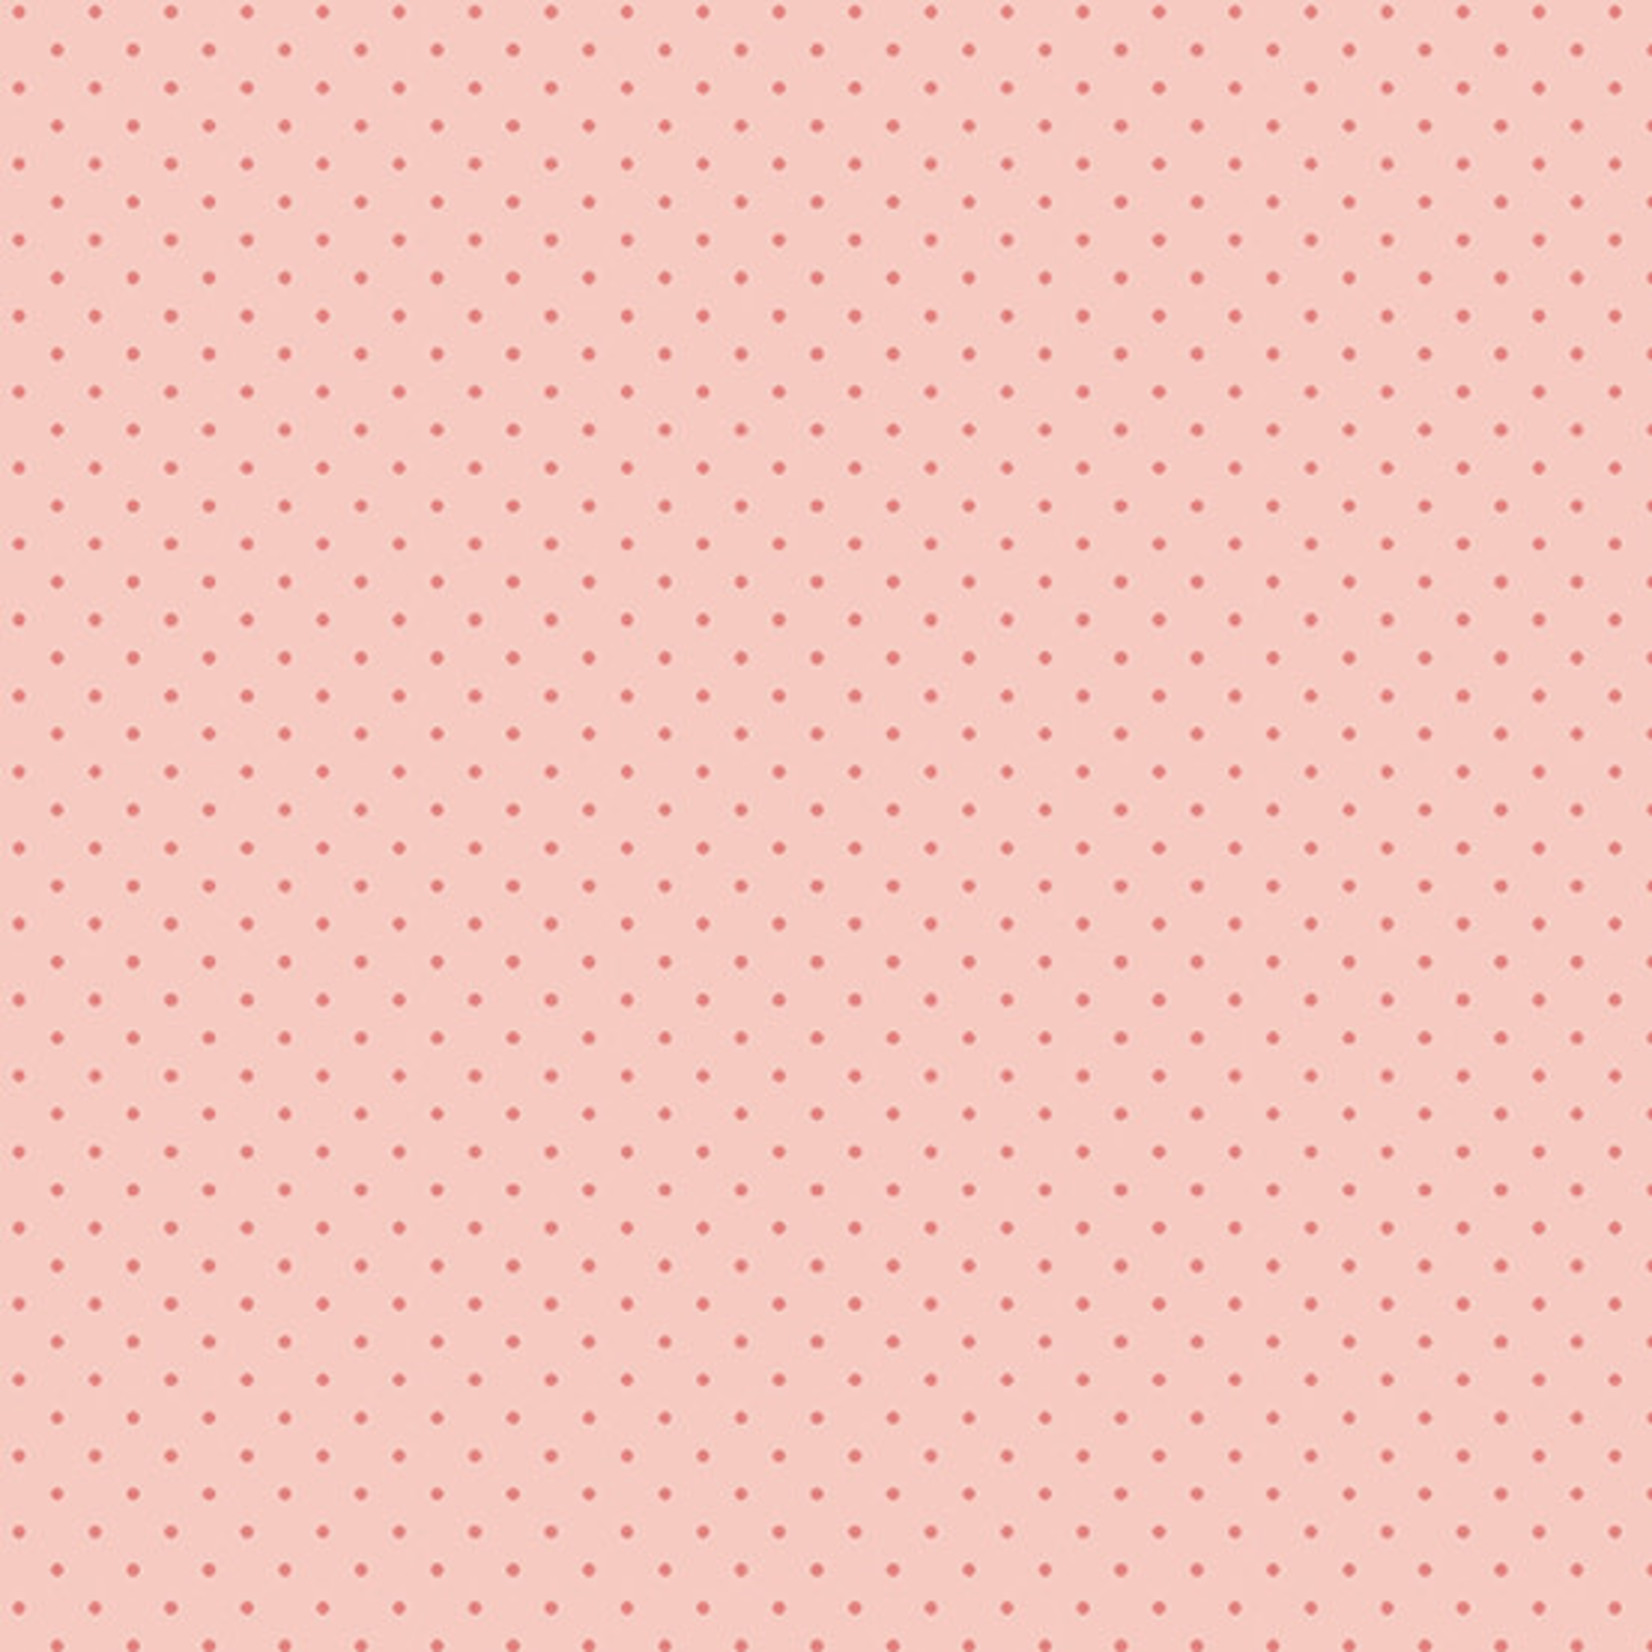 Andover ANNA Freckles, Light Pink, PER CM OR $20/M